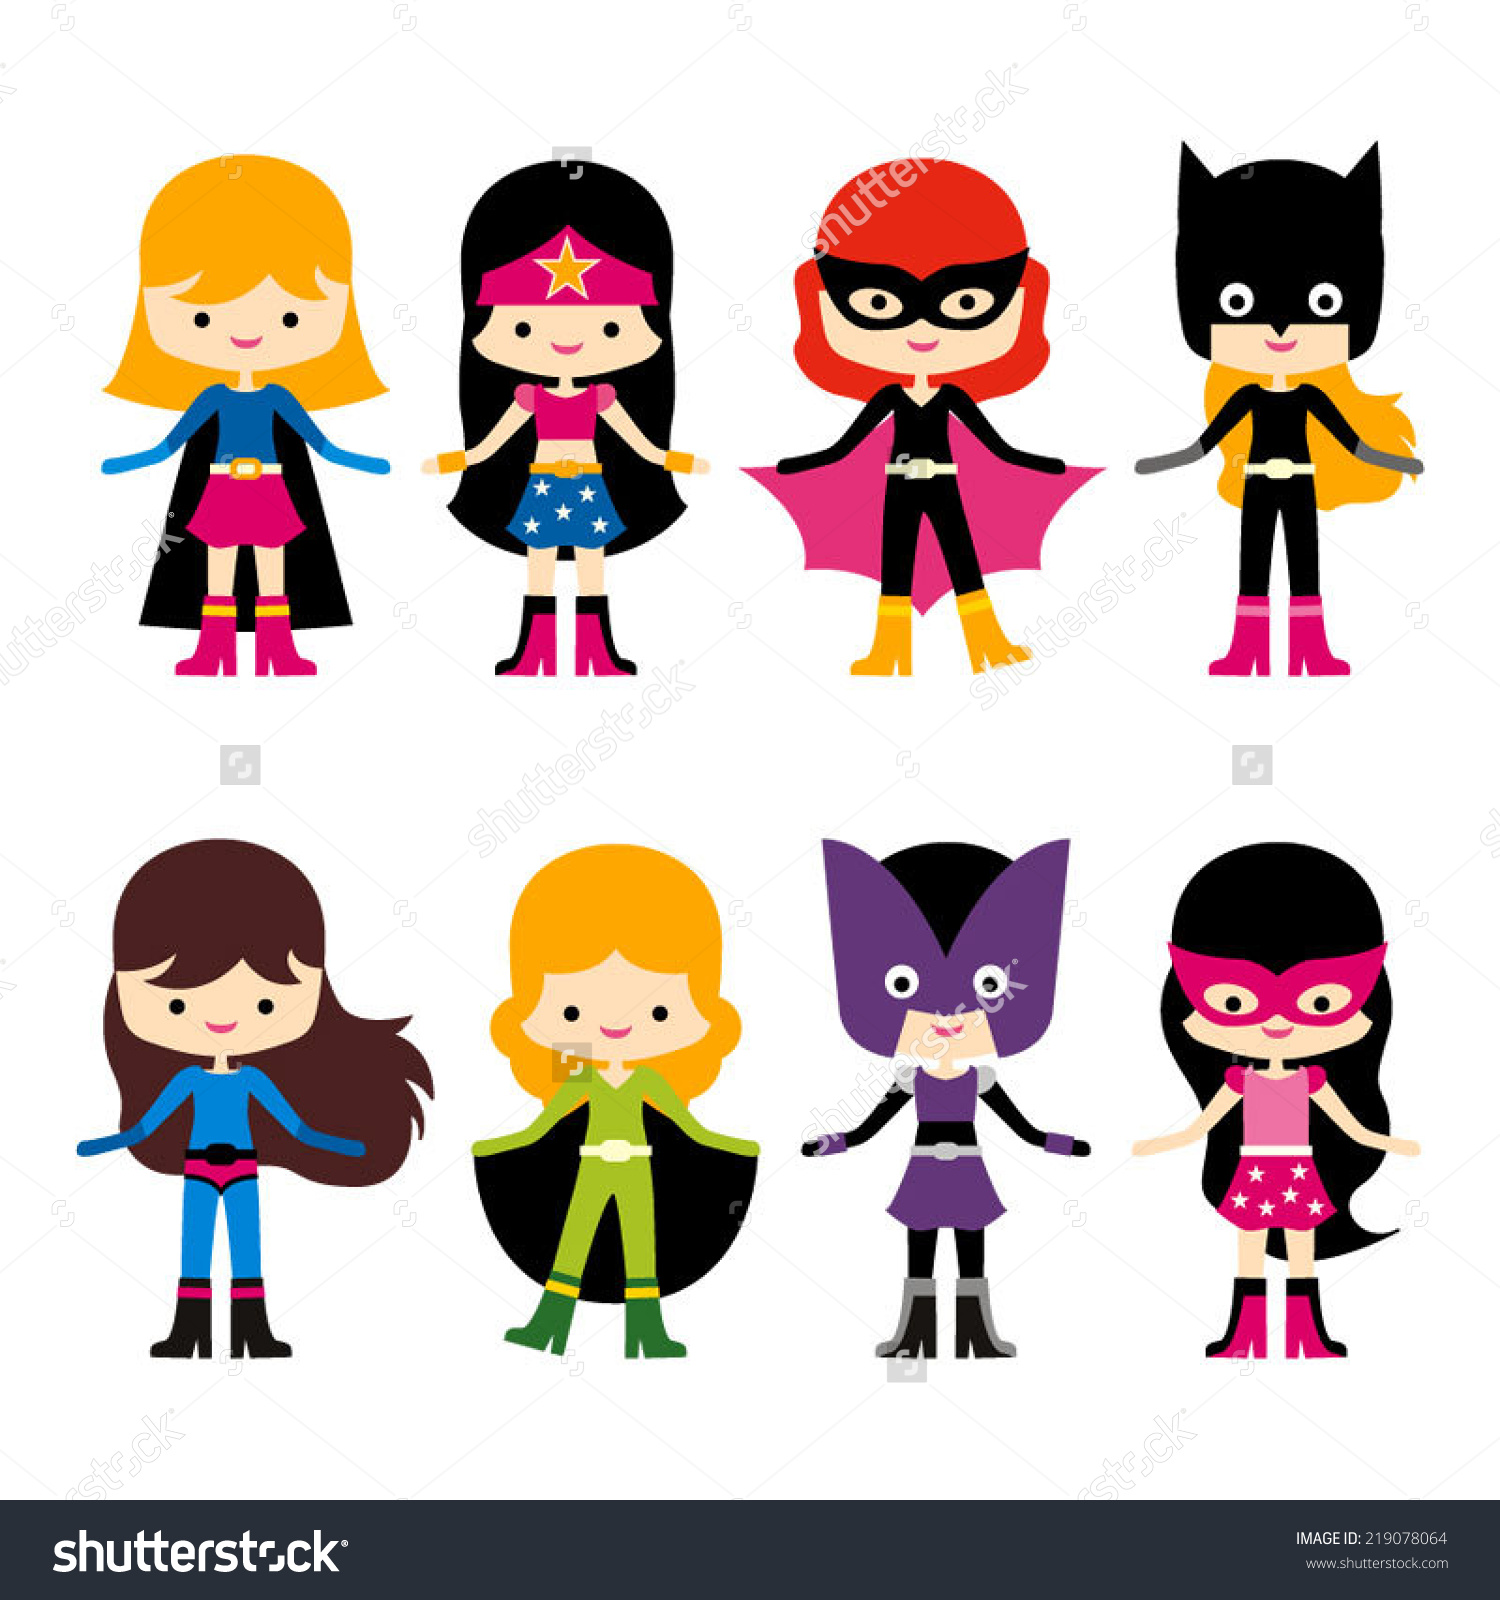 Cute Super Hero Clipart.